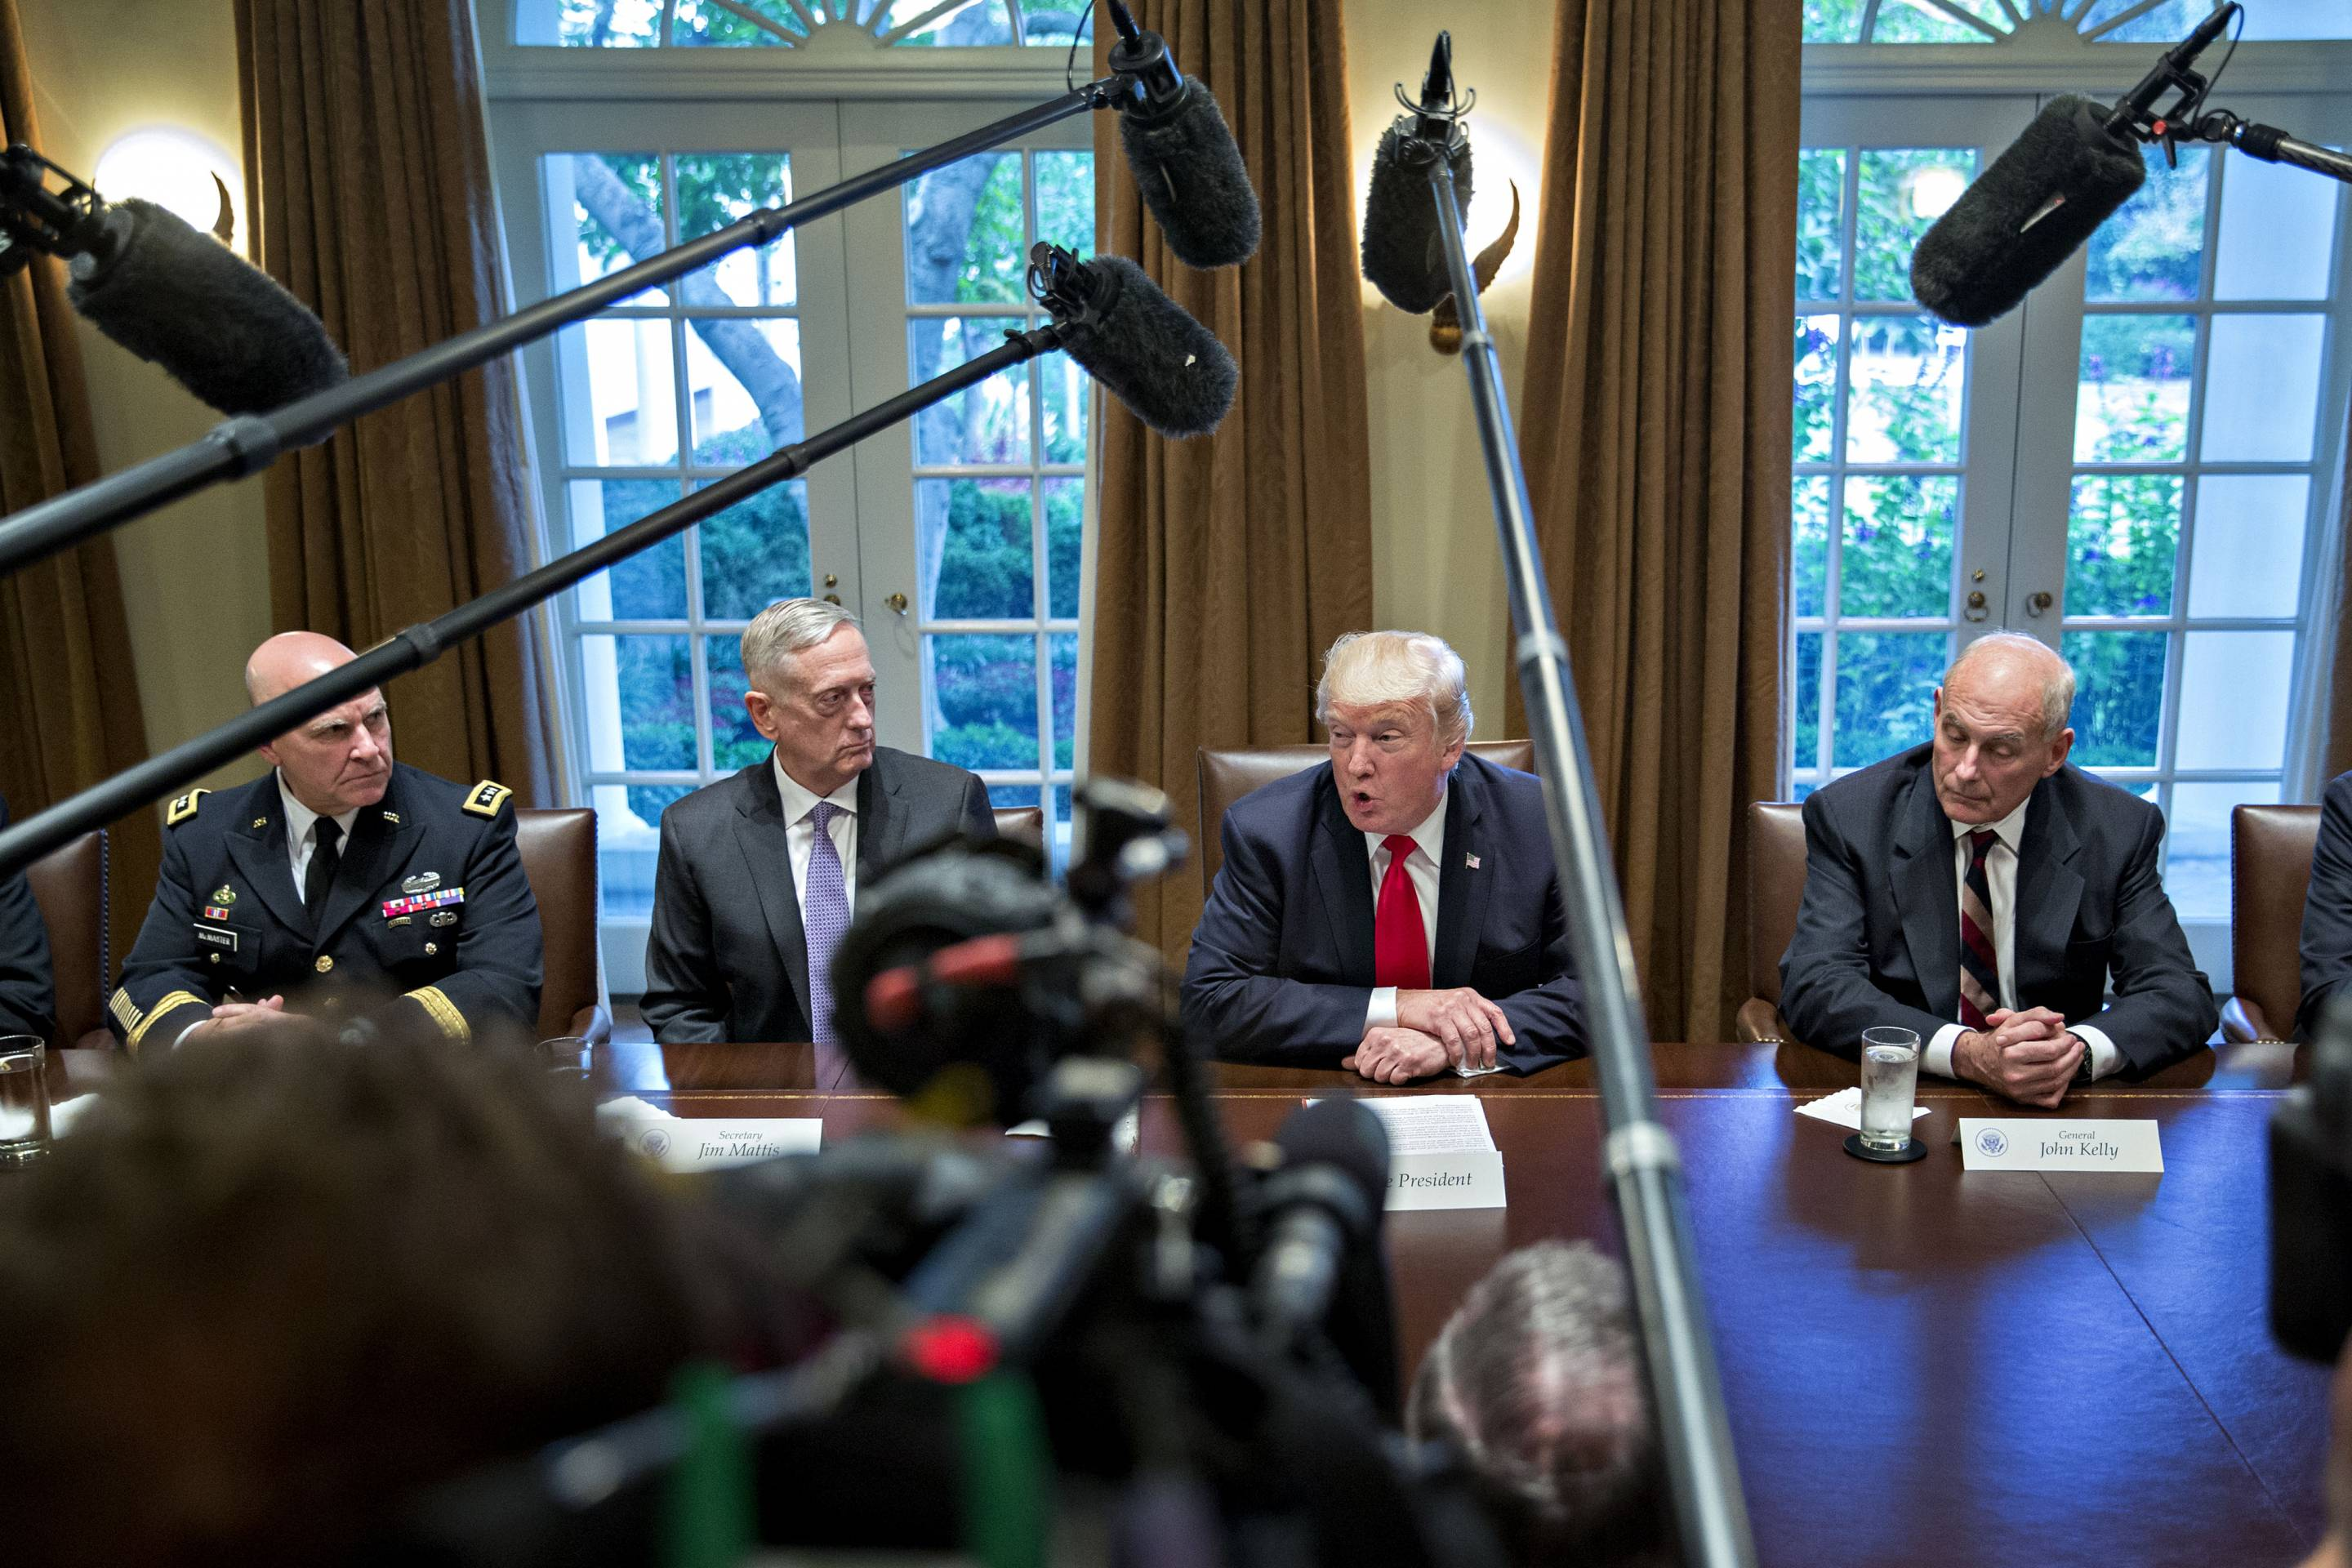 President Trump Participates In Briefing With Senior Military Leaders